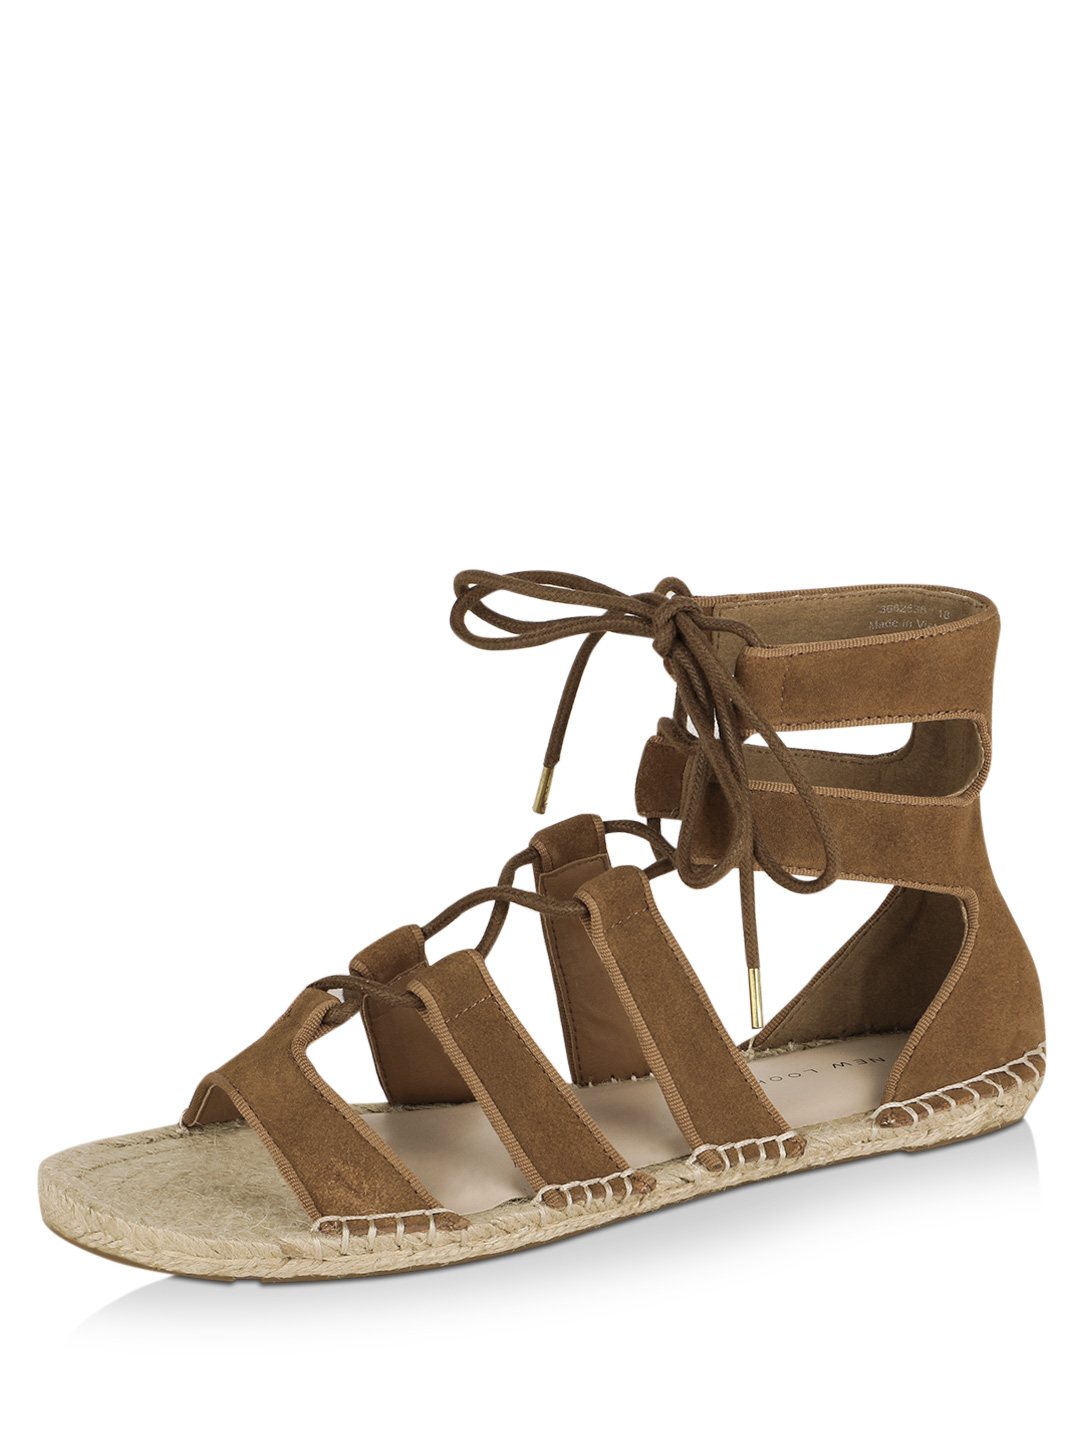 New Look Tan Lace Up Sandals 1